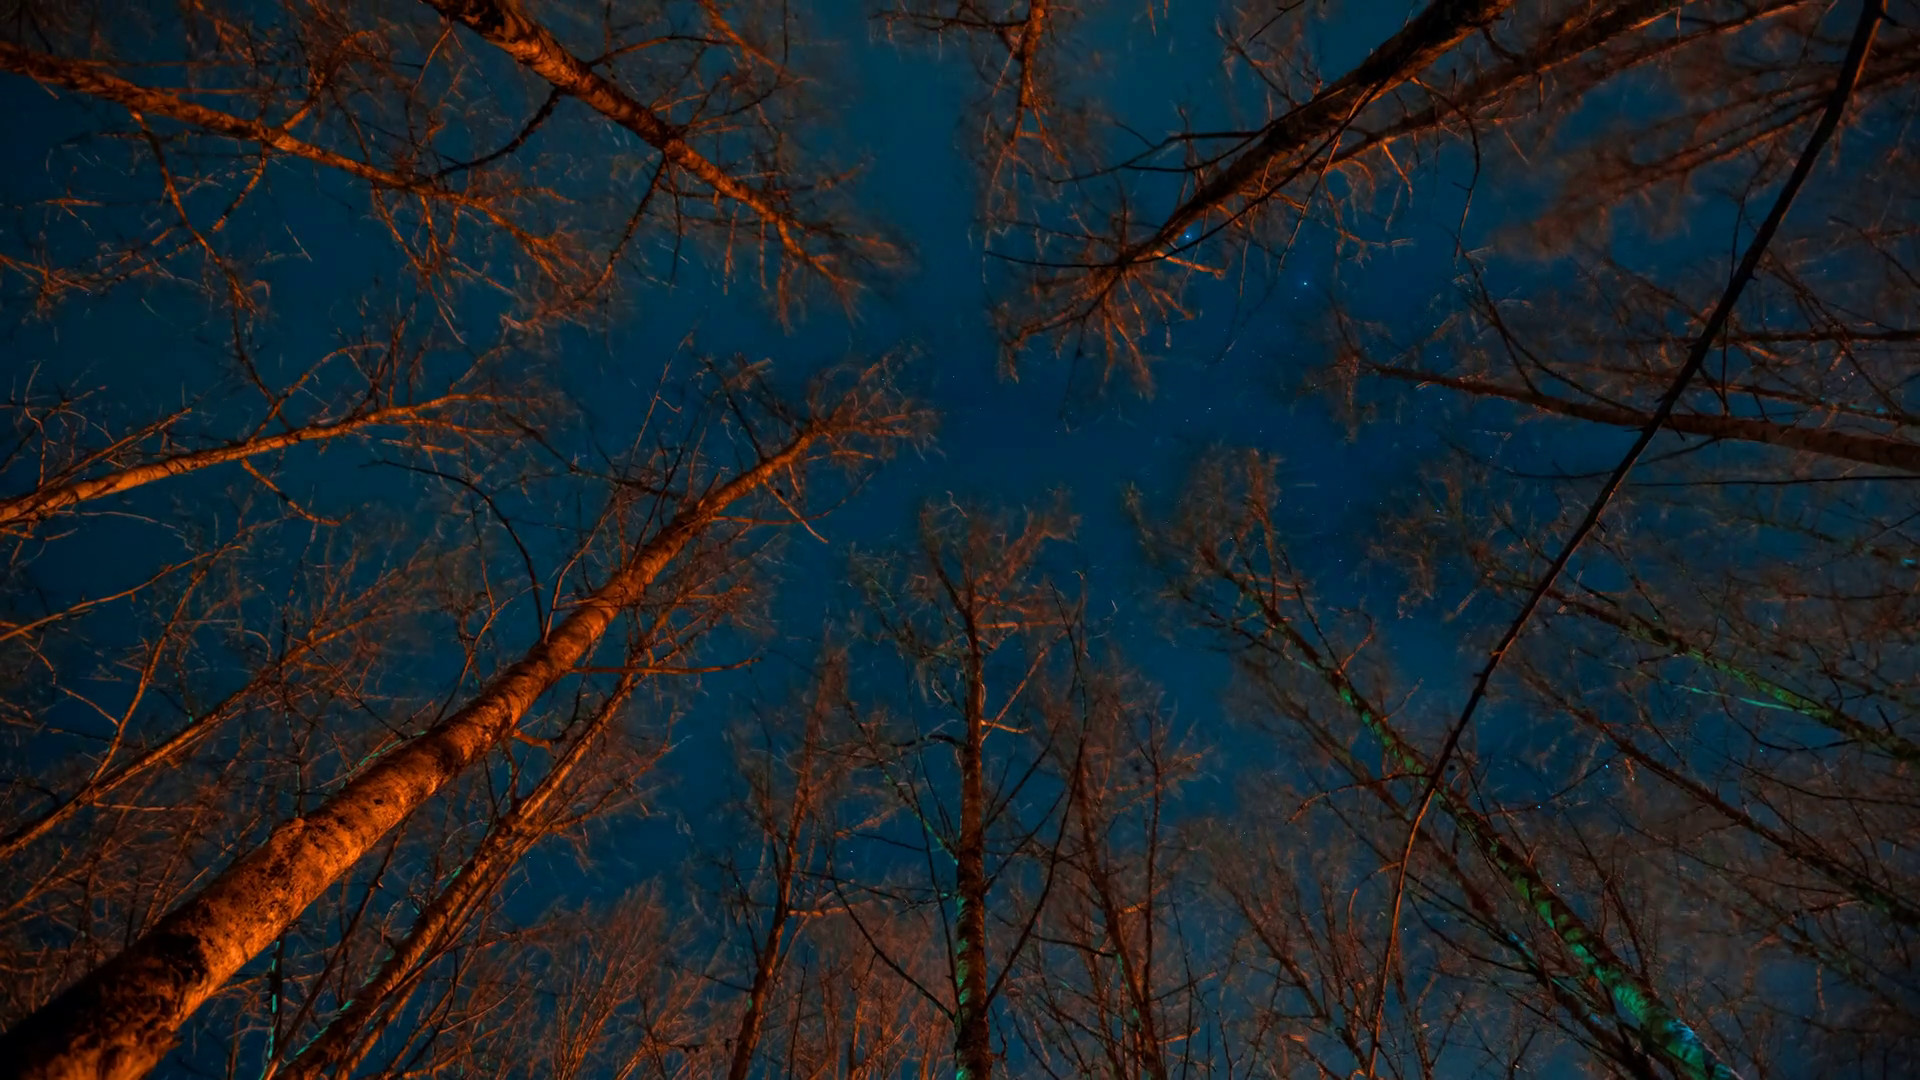 Iphone Optical Illusion Wallpaper Scary Forest Wallpaper 57 Images